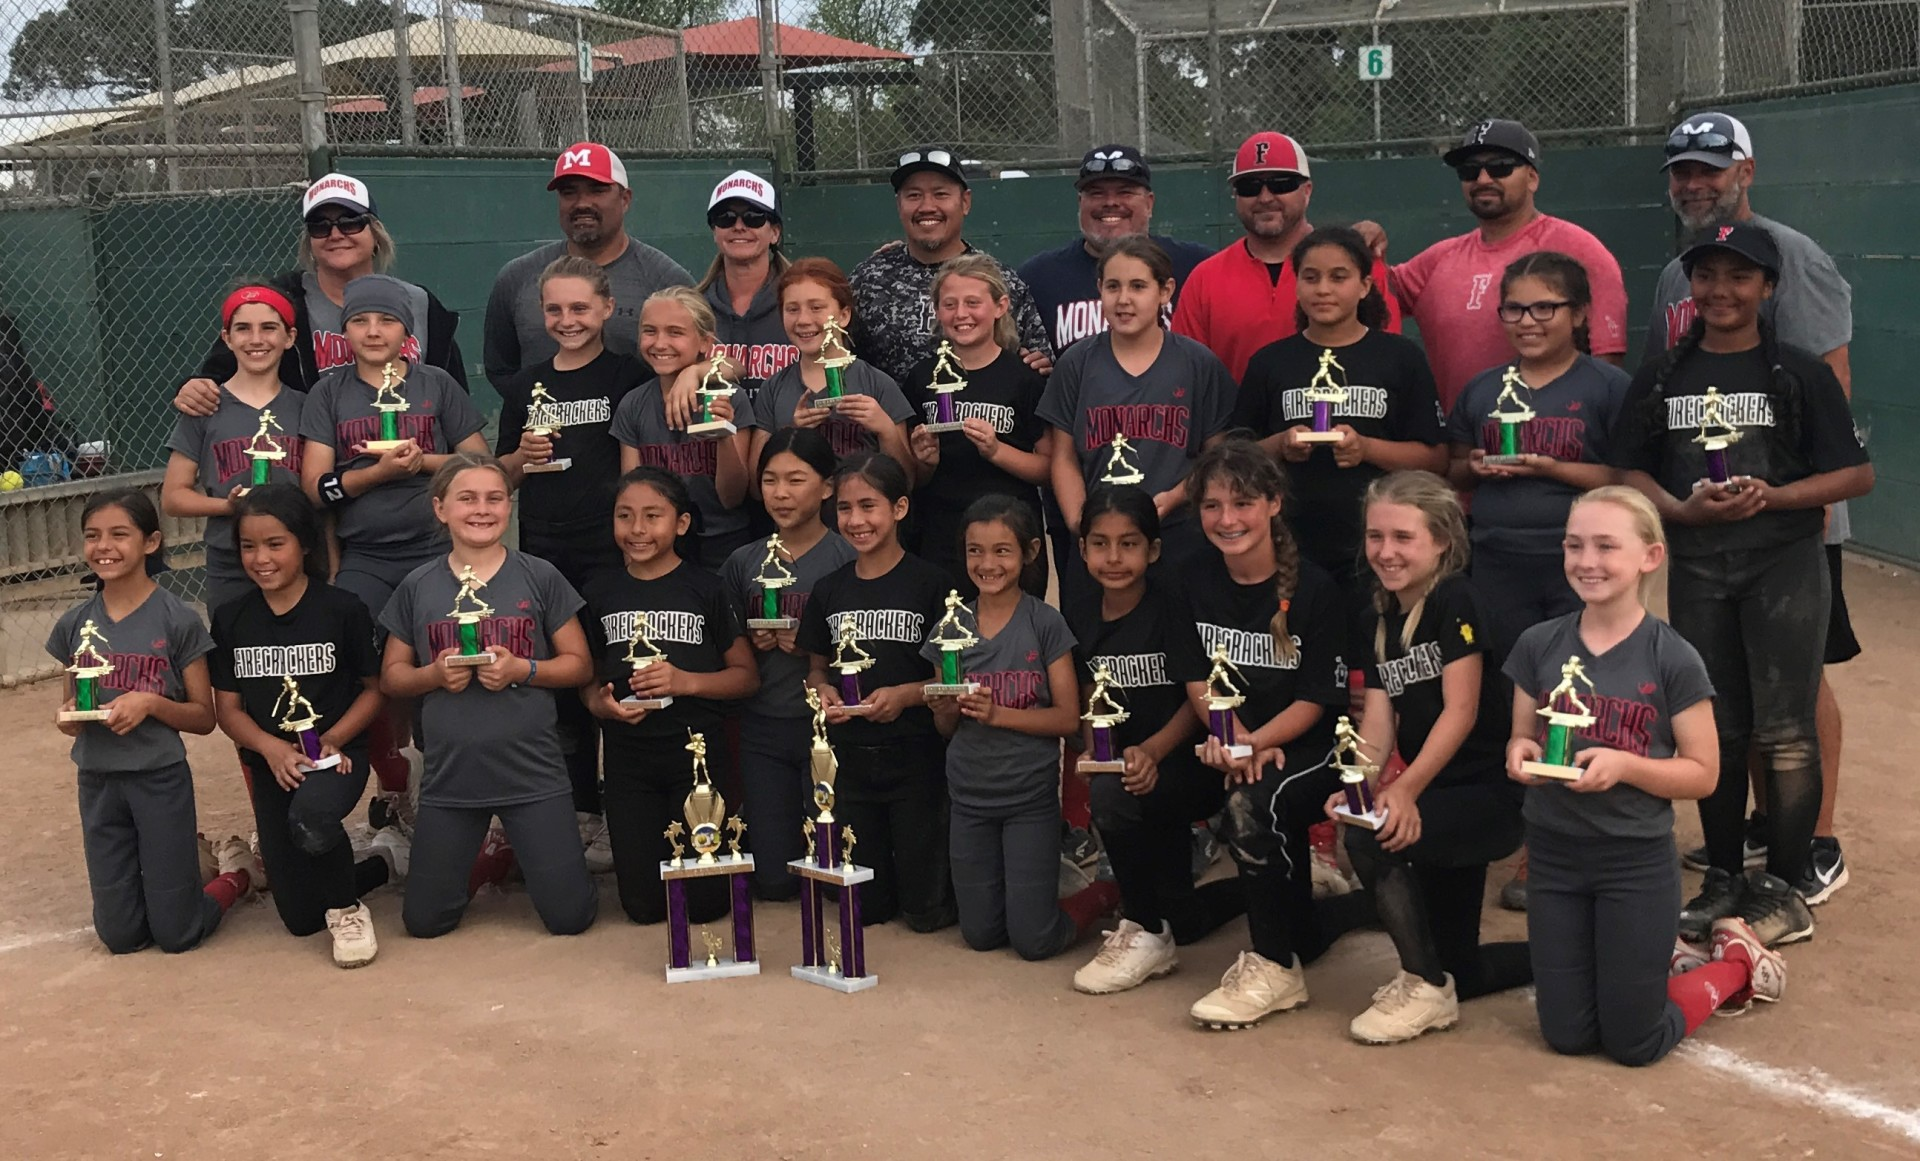 10u - Firecrackers - Sabo and Monarchs